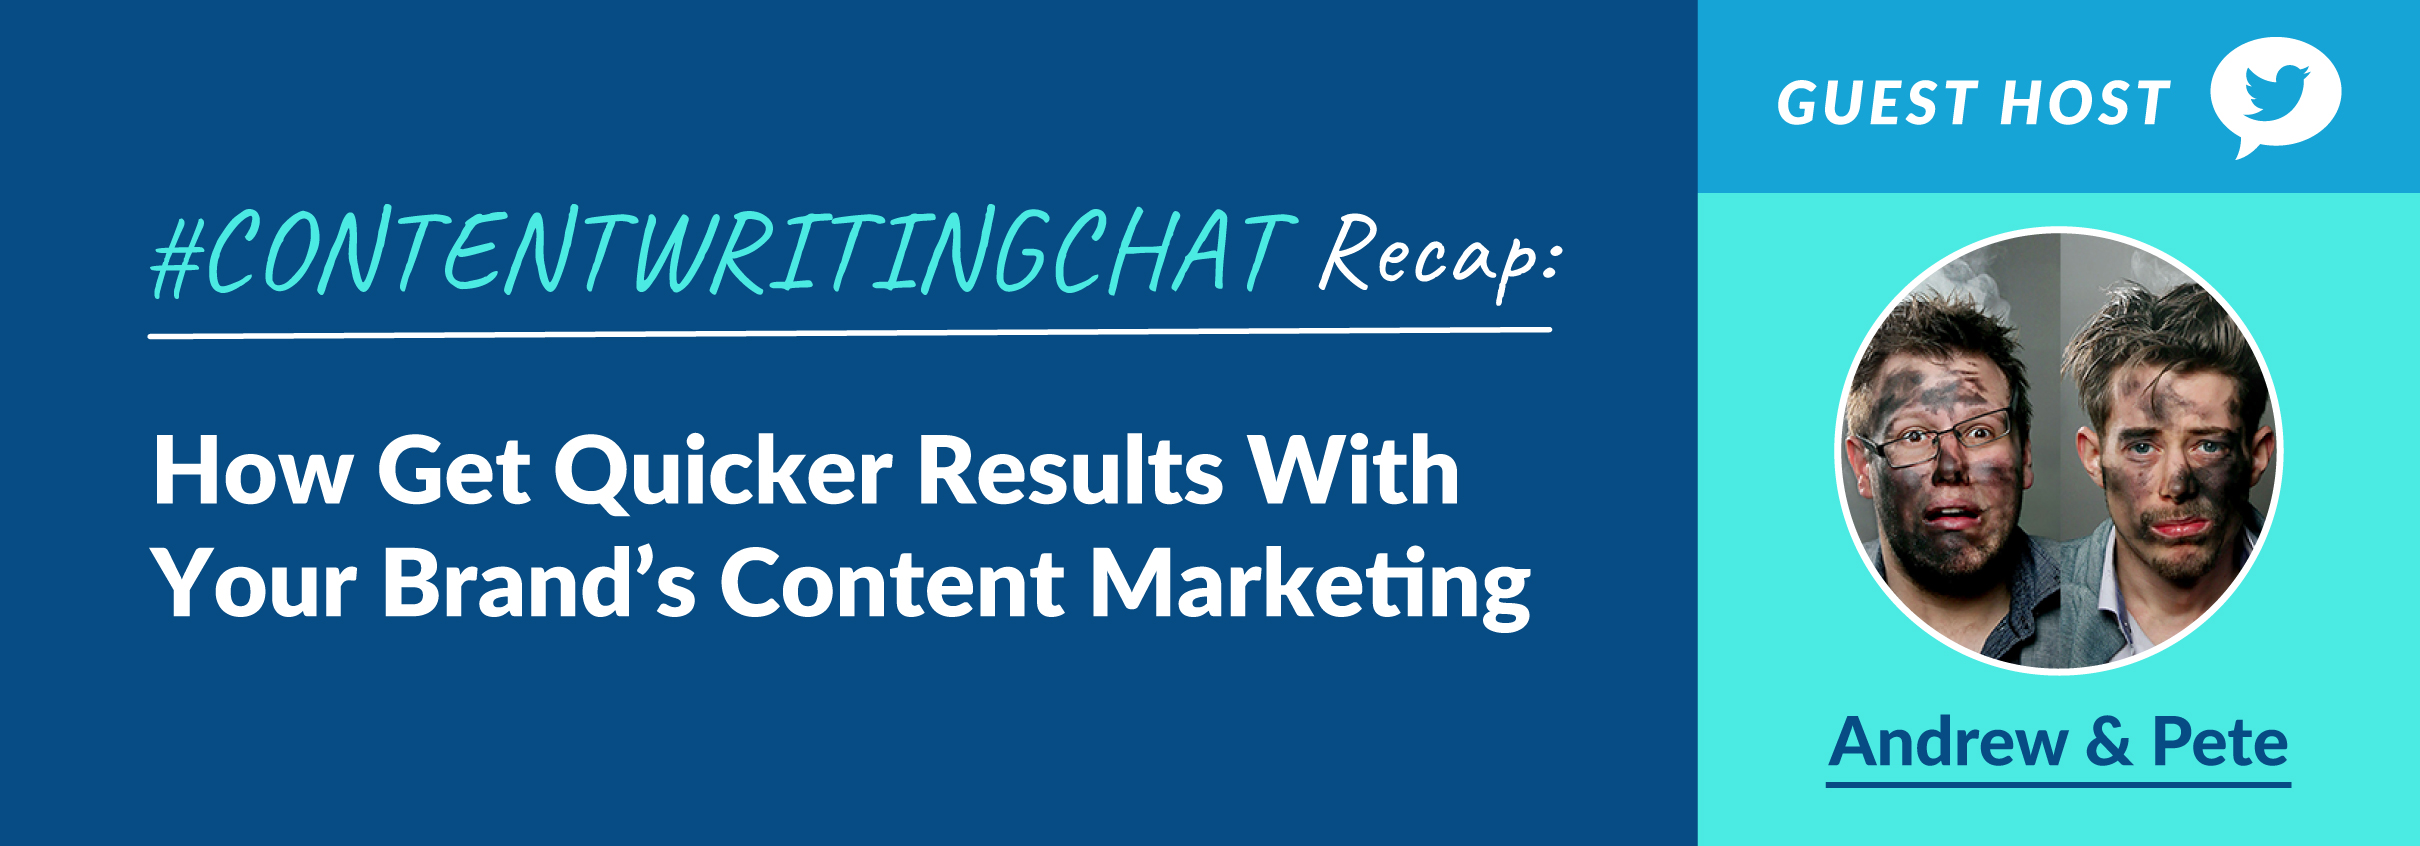 #ContentWritingChat Recap: How to Get Quicker Results With Your Brand's Content Marketing with Andrew & Pete